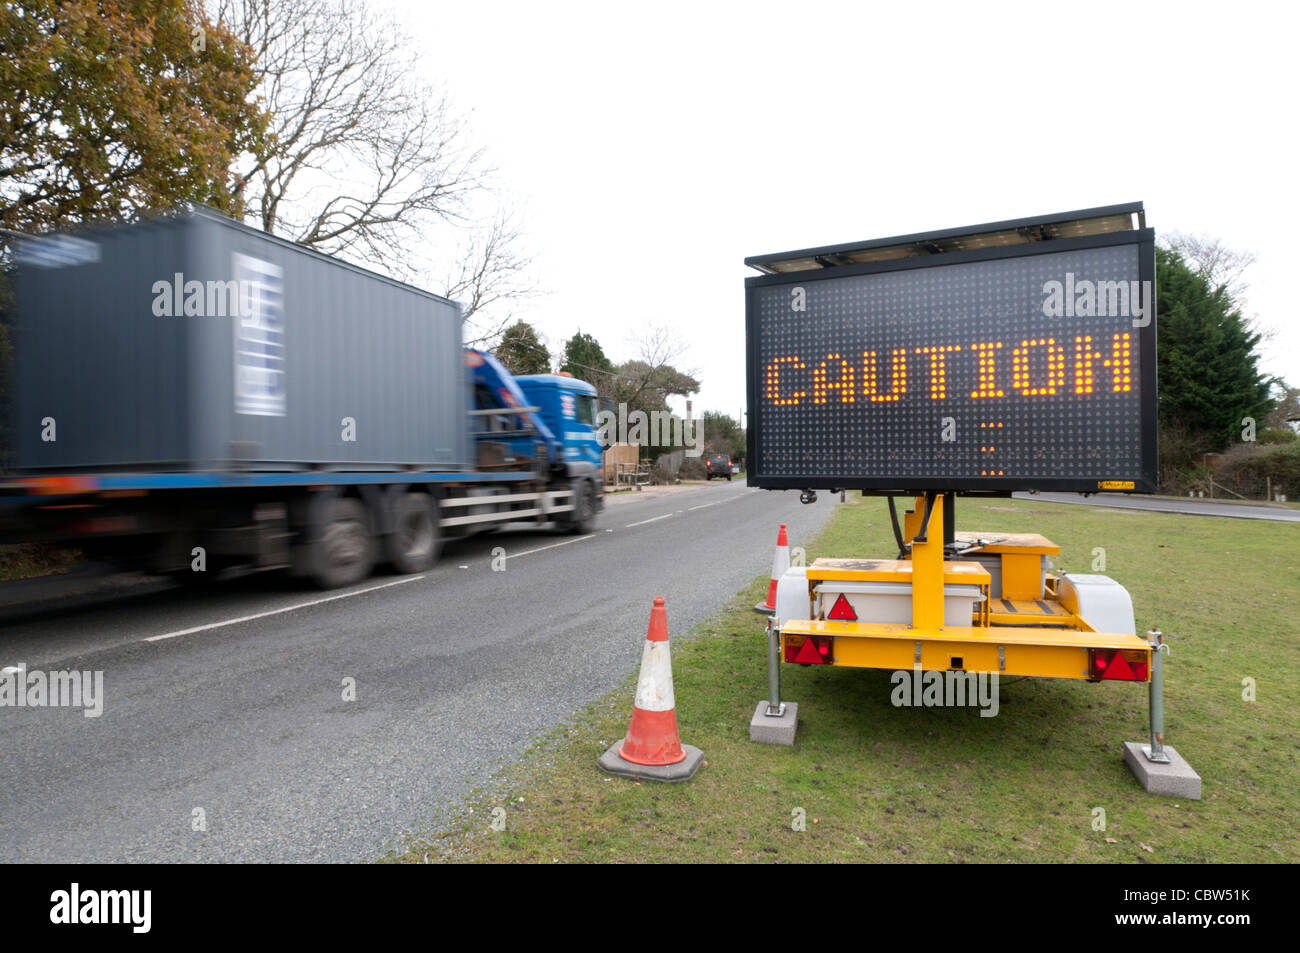 Mobile Matrix Road Sign - Stock Image